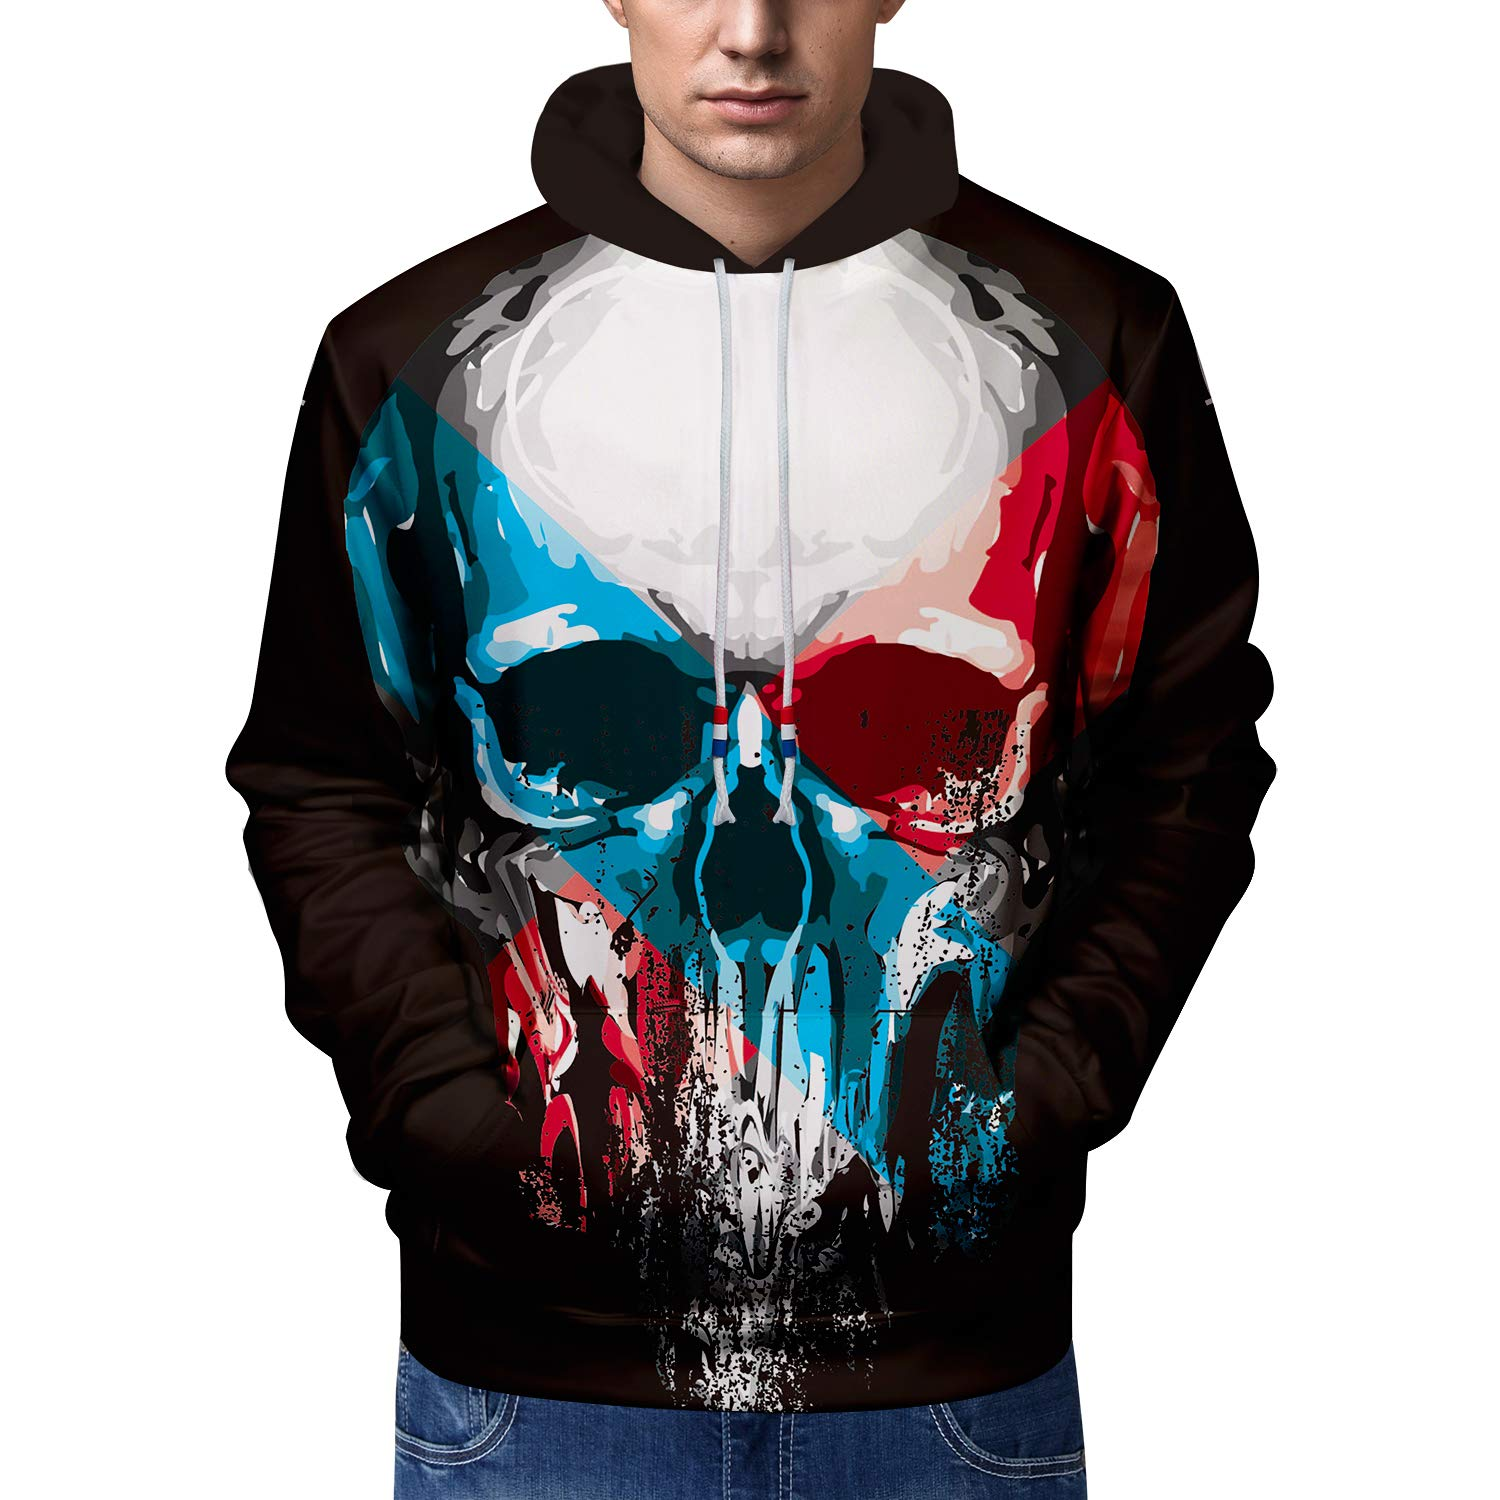 Weimostar Unisex 3D Printed Hoodies with Pockets